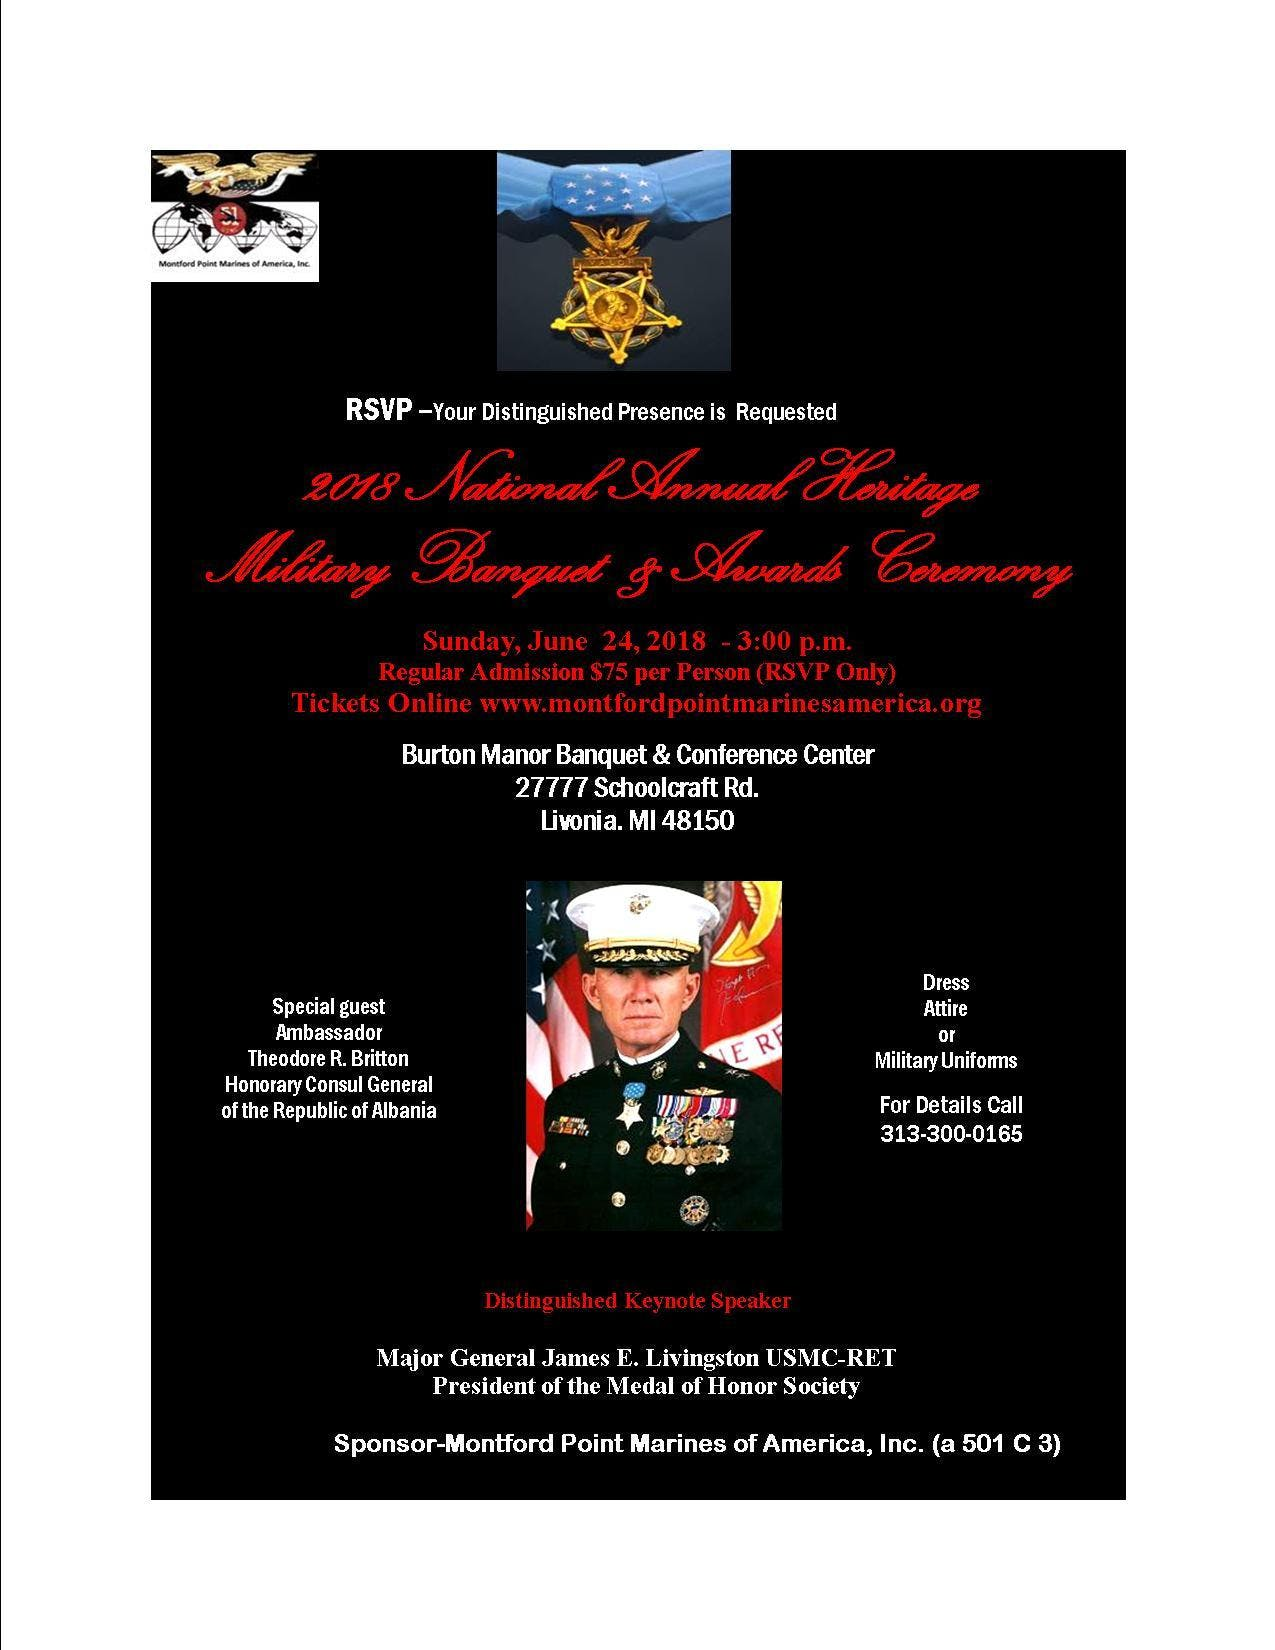 2018 National Annual Heritage Military Banque